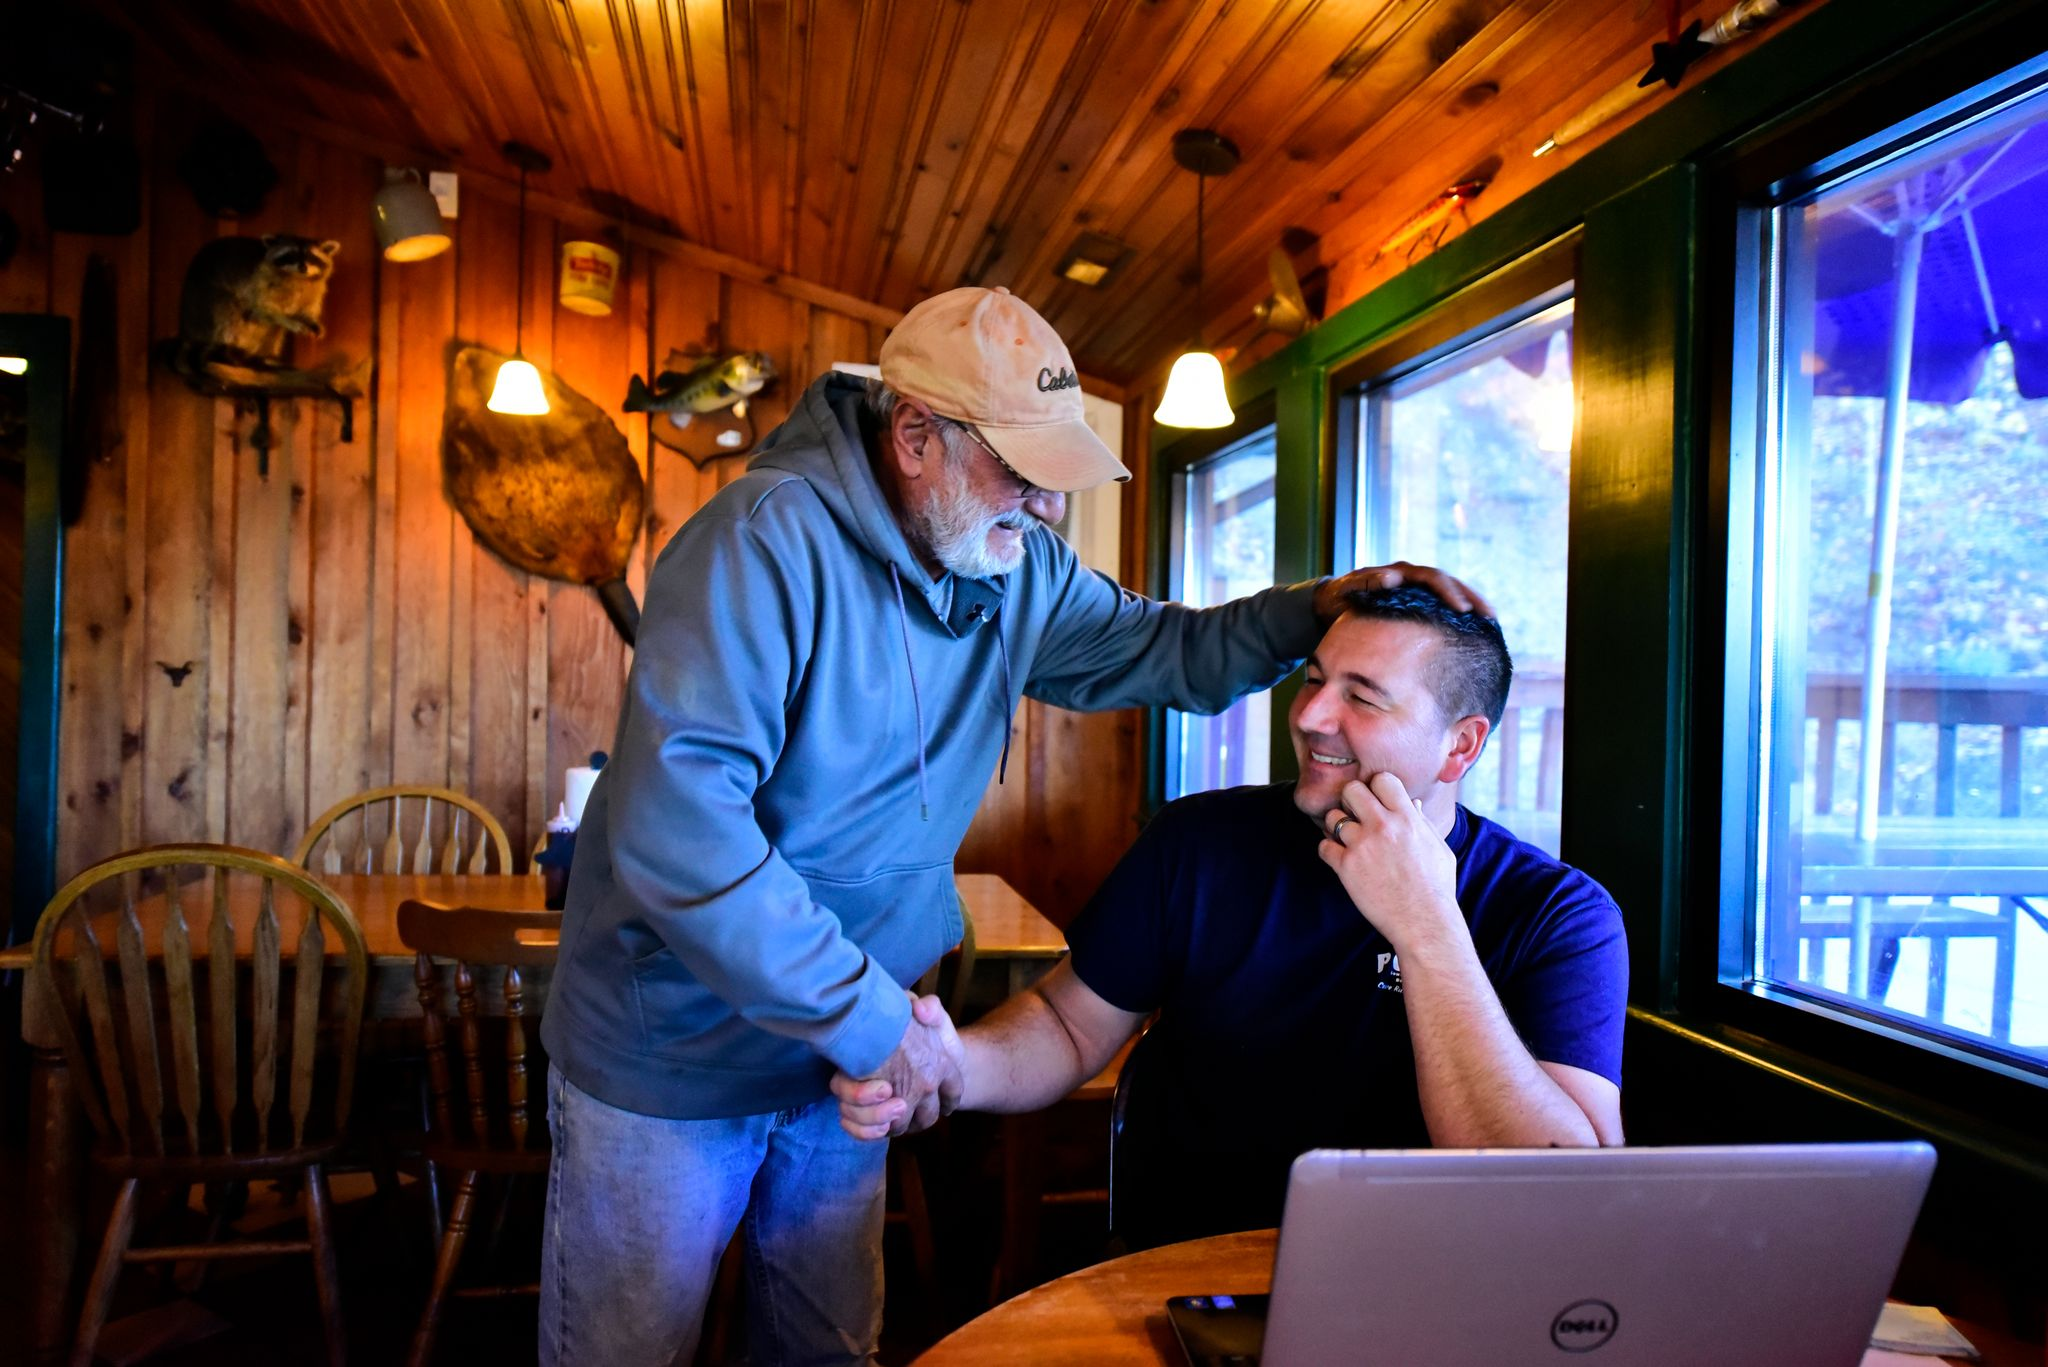 """Mike Winer, left, a Pop's BBQ regular, greets Adam. Adam fosters the values of community and family at Pop's. """"Sometimes he comes in for five minutes to talk, sometimes it's 30 minutes,"""" says Adam."""